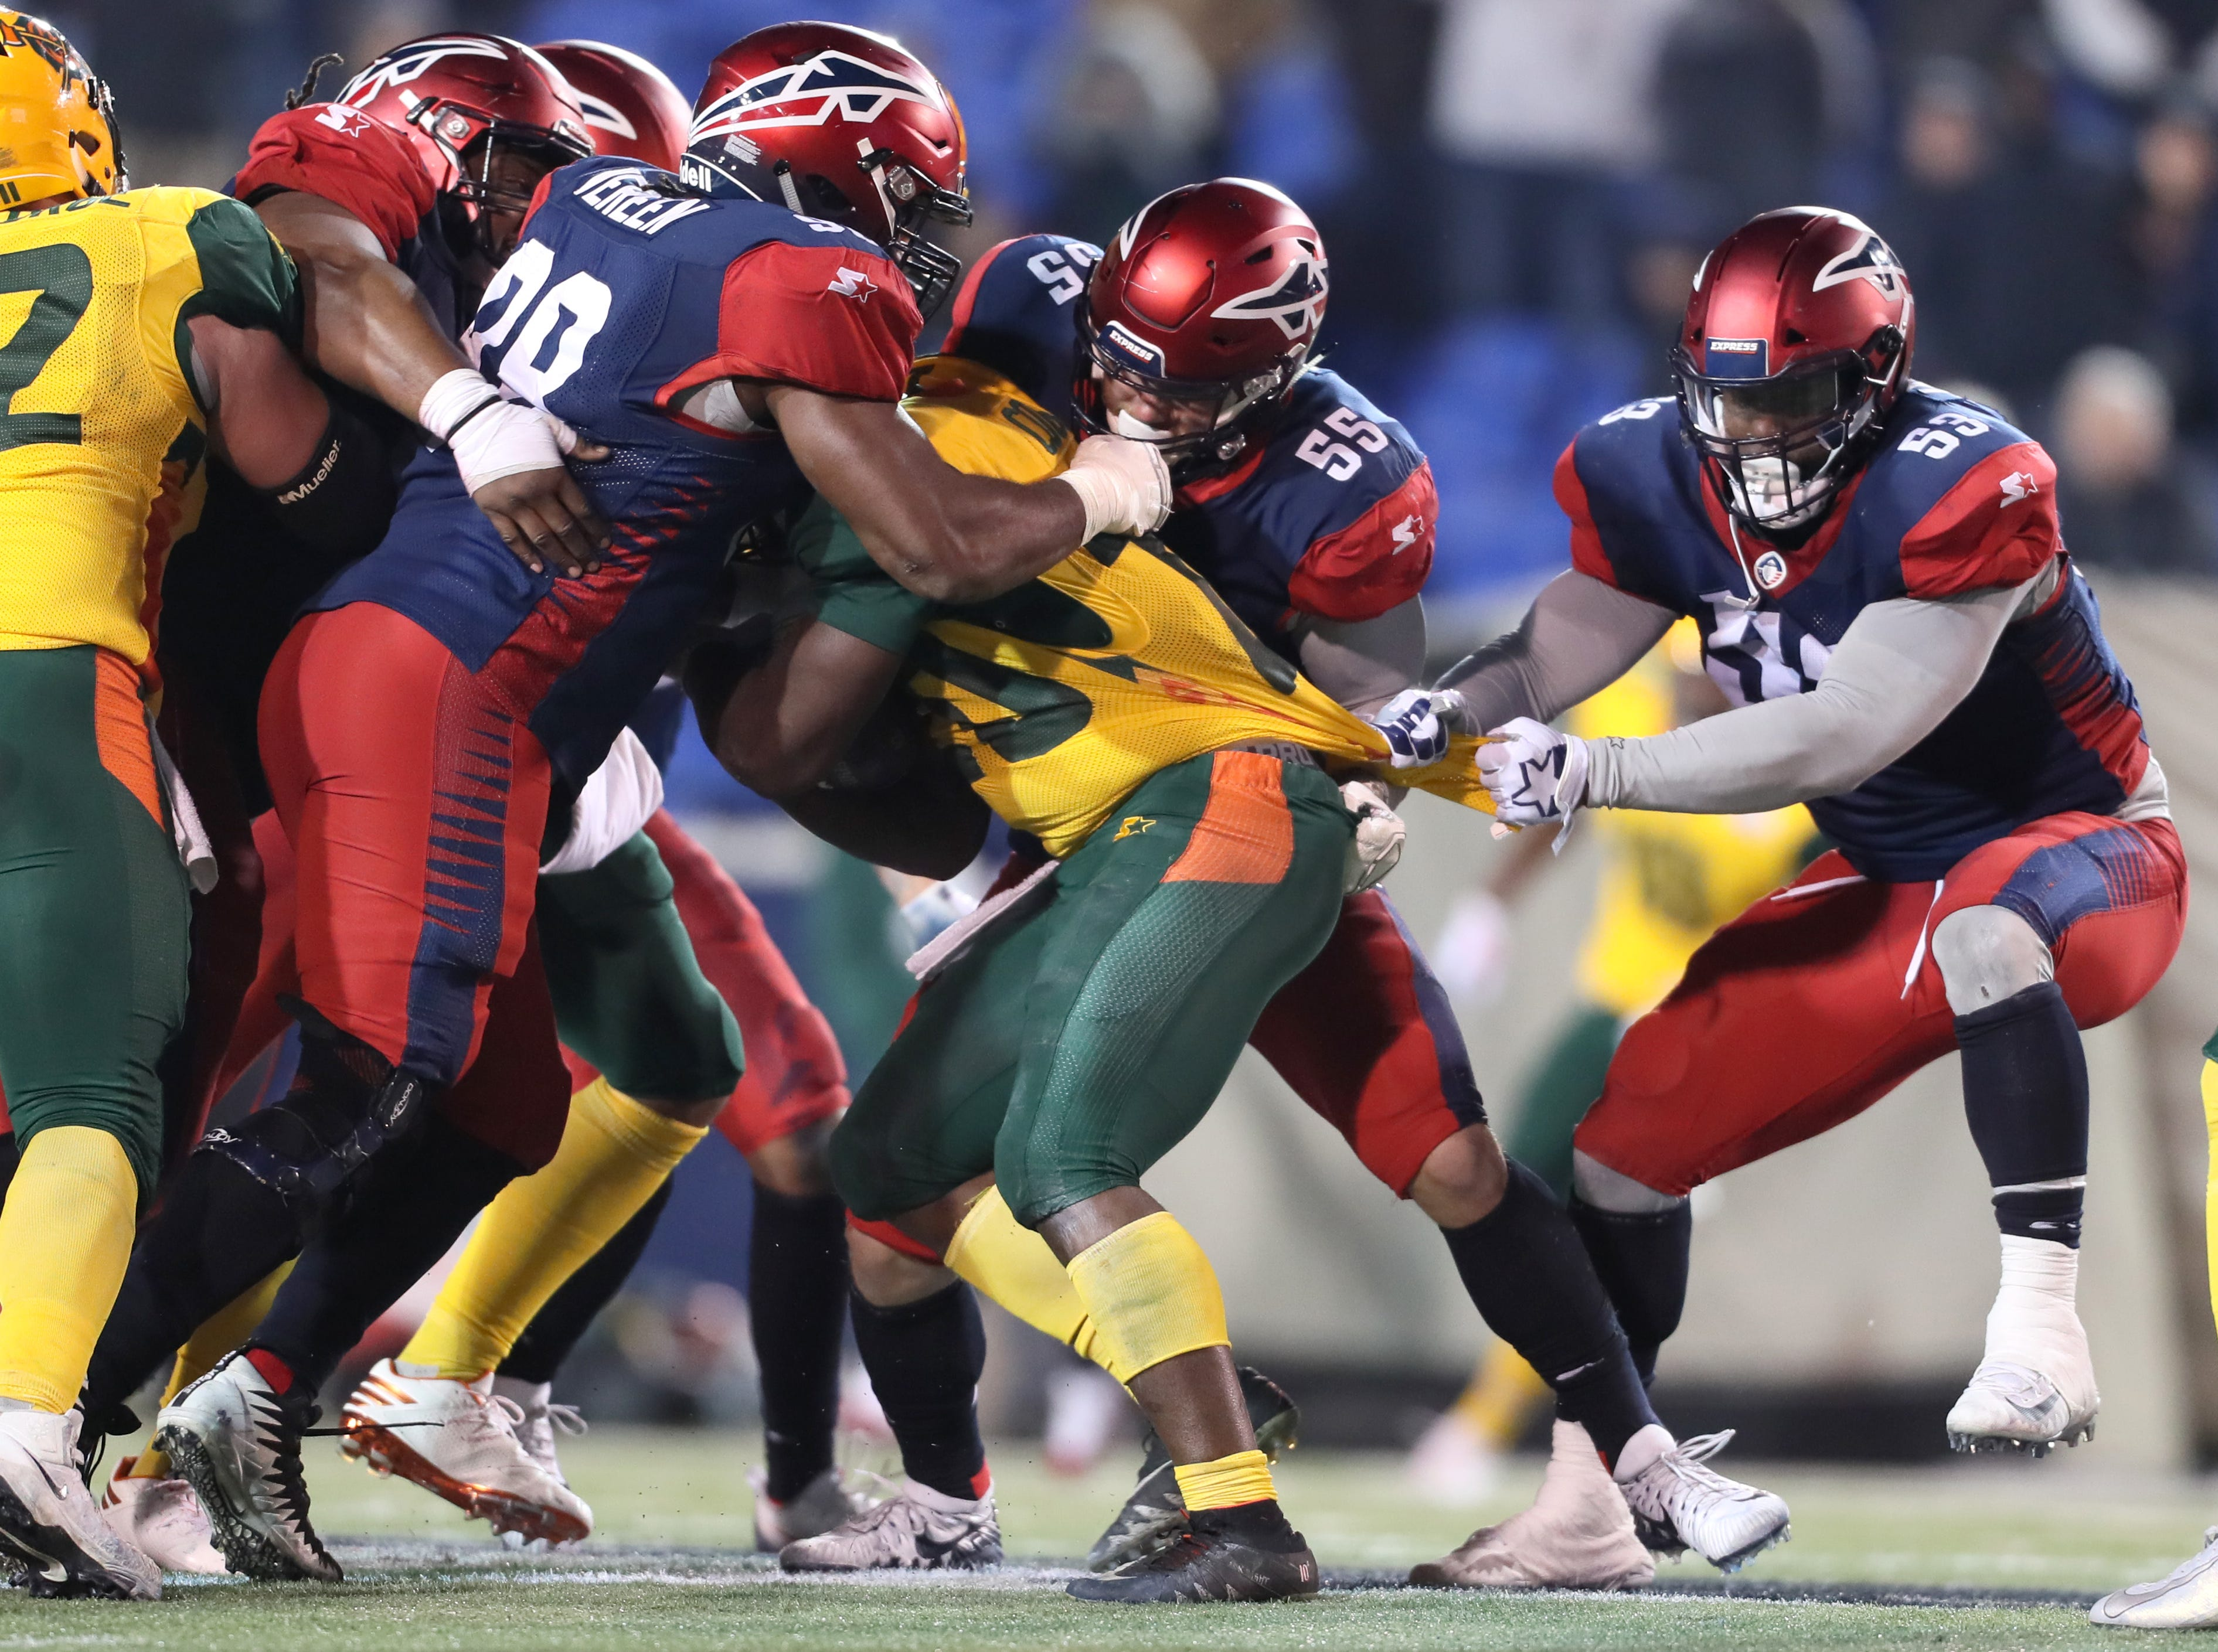 Memphis Express defensive players Corey Vereen, from left, Davis Tull and Drew Jackson pull down Arizona Hotshots running back Tim Cook during their game at the Liberty Bowl on Saturday, Feb. 16, 2019.